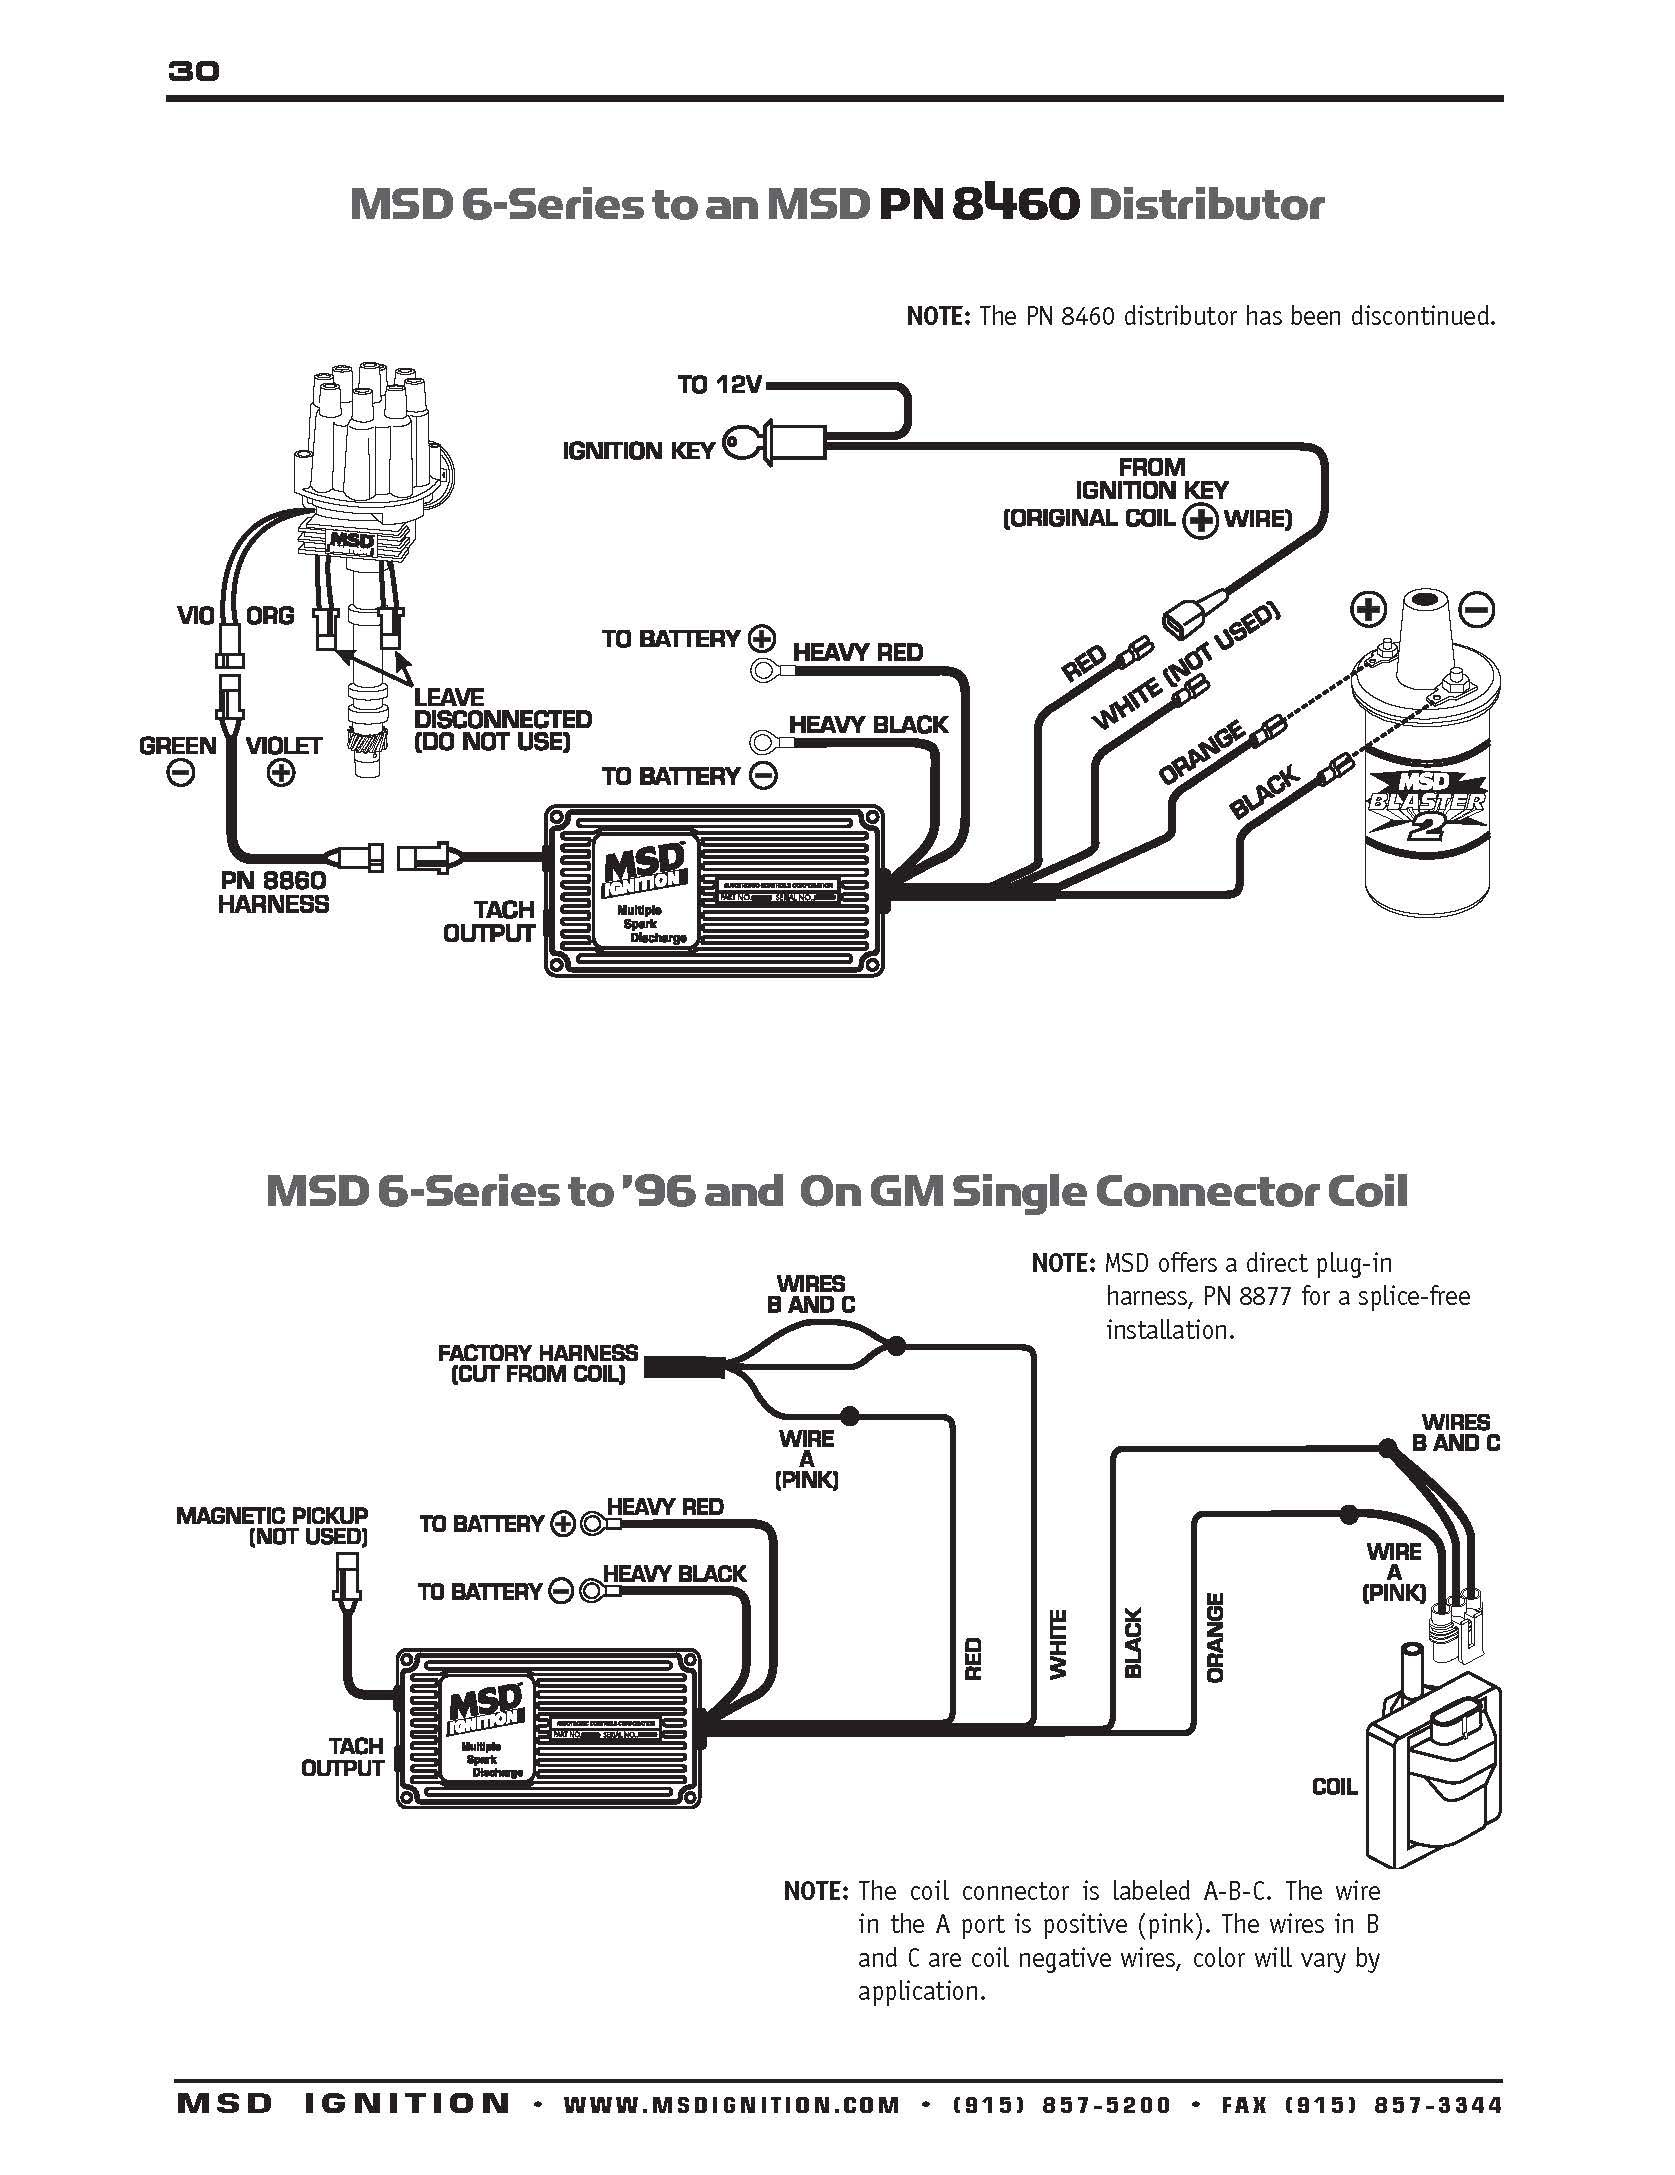 Msd Ignition Wiring Diagrams In Msd Distributor Diagram On Msd Distributor Wiring Diagram Ignition Coil Msd Diagram